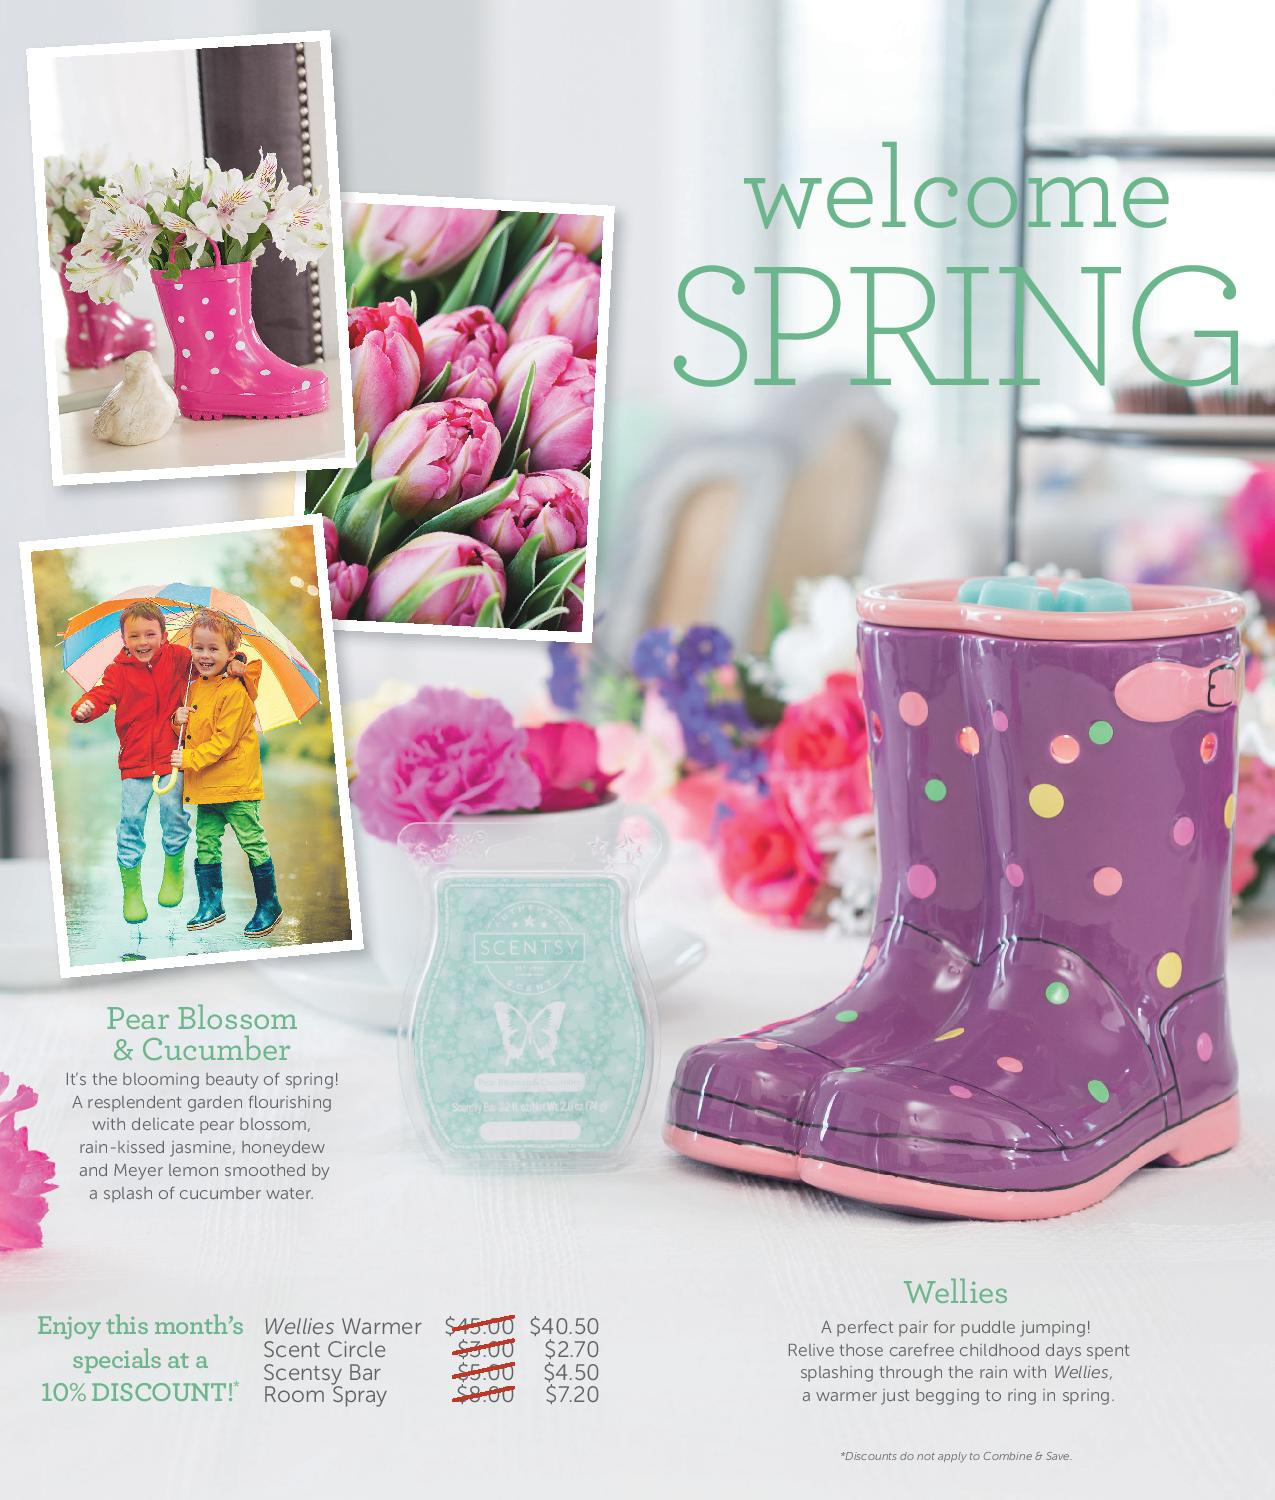 Warmer of the Month February 2016 Scensty